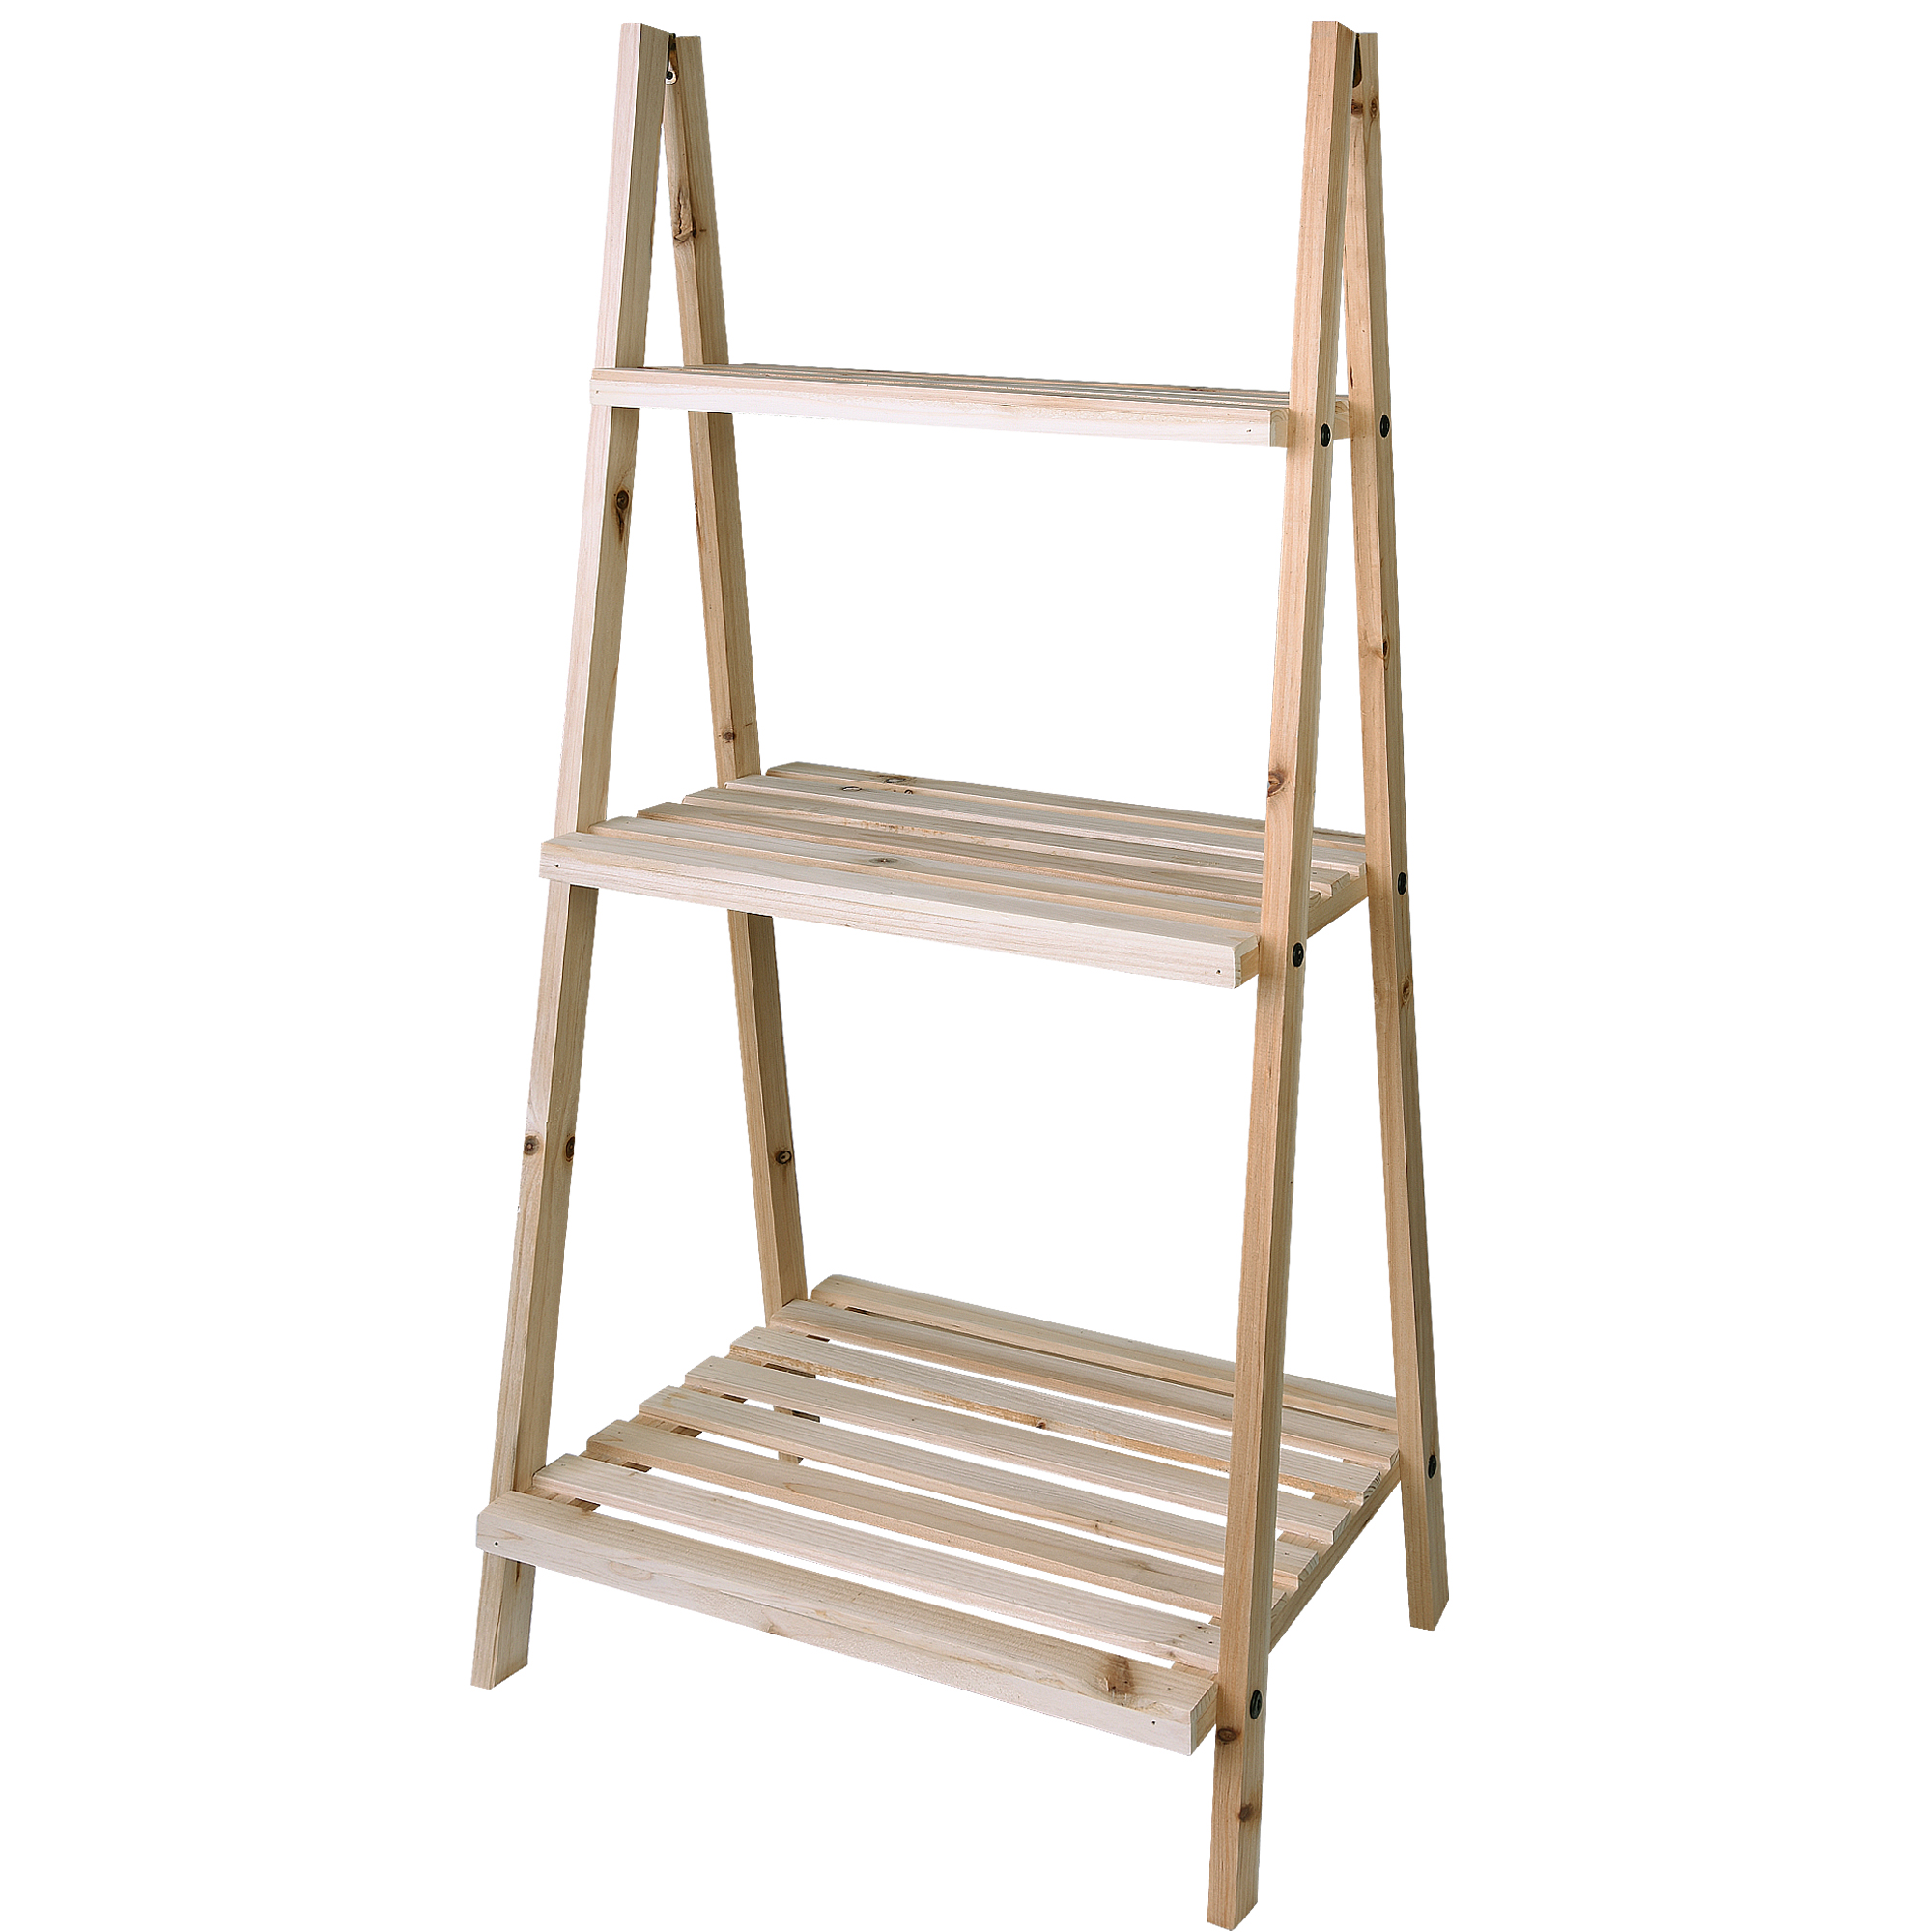 Natural Evelyn Living 2 Tier Wooden Plant Stand Flower Decoration Display Organiser Outdoor Indoor Garden Shelves Pot Shelf Rack Holder Plant Containers Accessories Stands